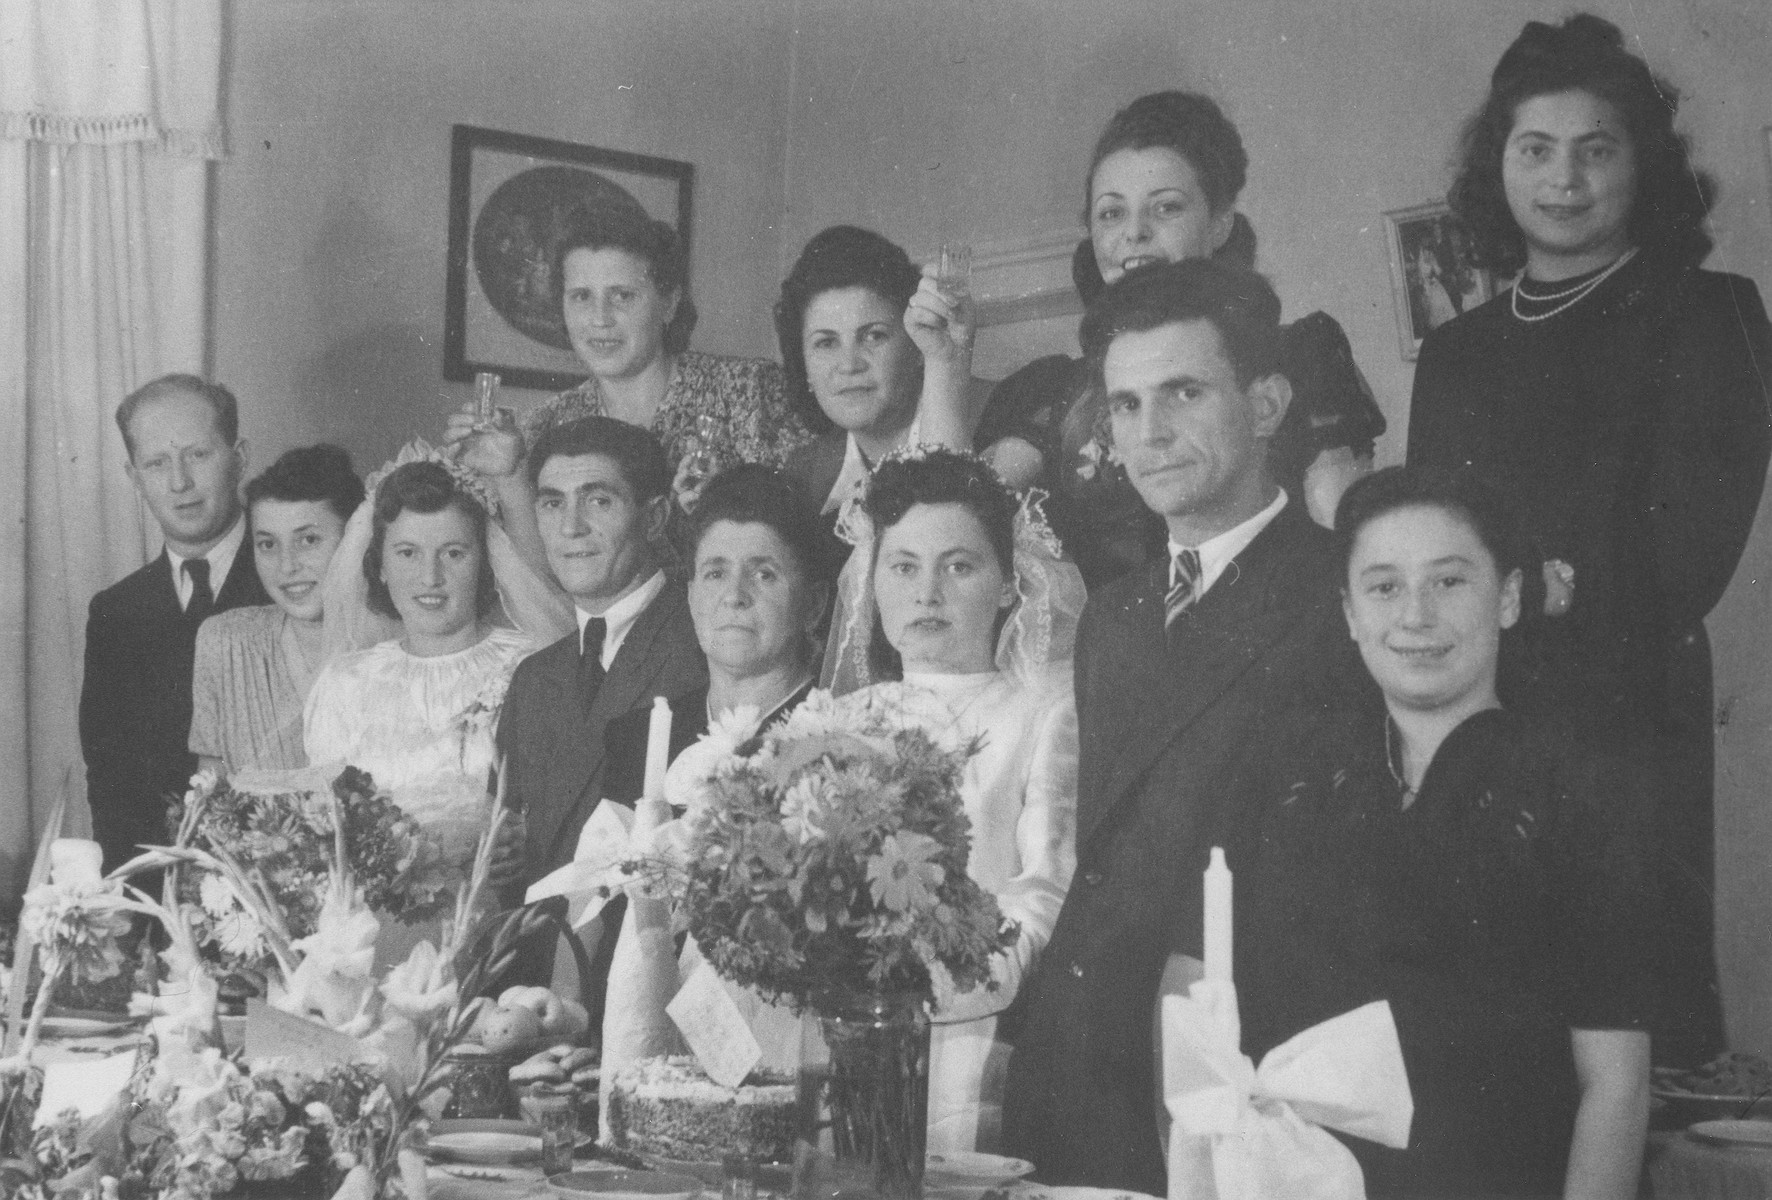 Family and friends celebrate the double wedding of Israel and Zlata (Distel) Malcmacher and Motel and Lola (Rolnik) Malcmacher.  Pictured from left to right are: (front row) Srulek and Natke (Rolnik) Katzman; Lola and Motel Malcmacher; Chaja Sara Malcmacher; Israel and Zlata Malcmacher; and Nechame (Probe) Rothschild; (back row): Chele (Huberman) Malcmacher; Rushke (Malcmacher) Borenstein; Sabina (Warshawsky) Rosenzweig; and Hadassah (Abramovich) Wandersman.